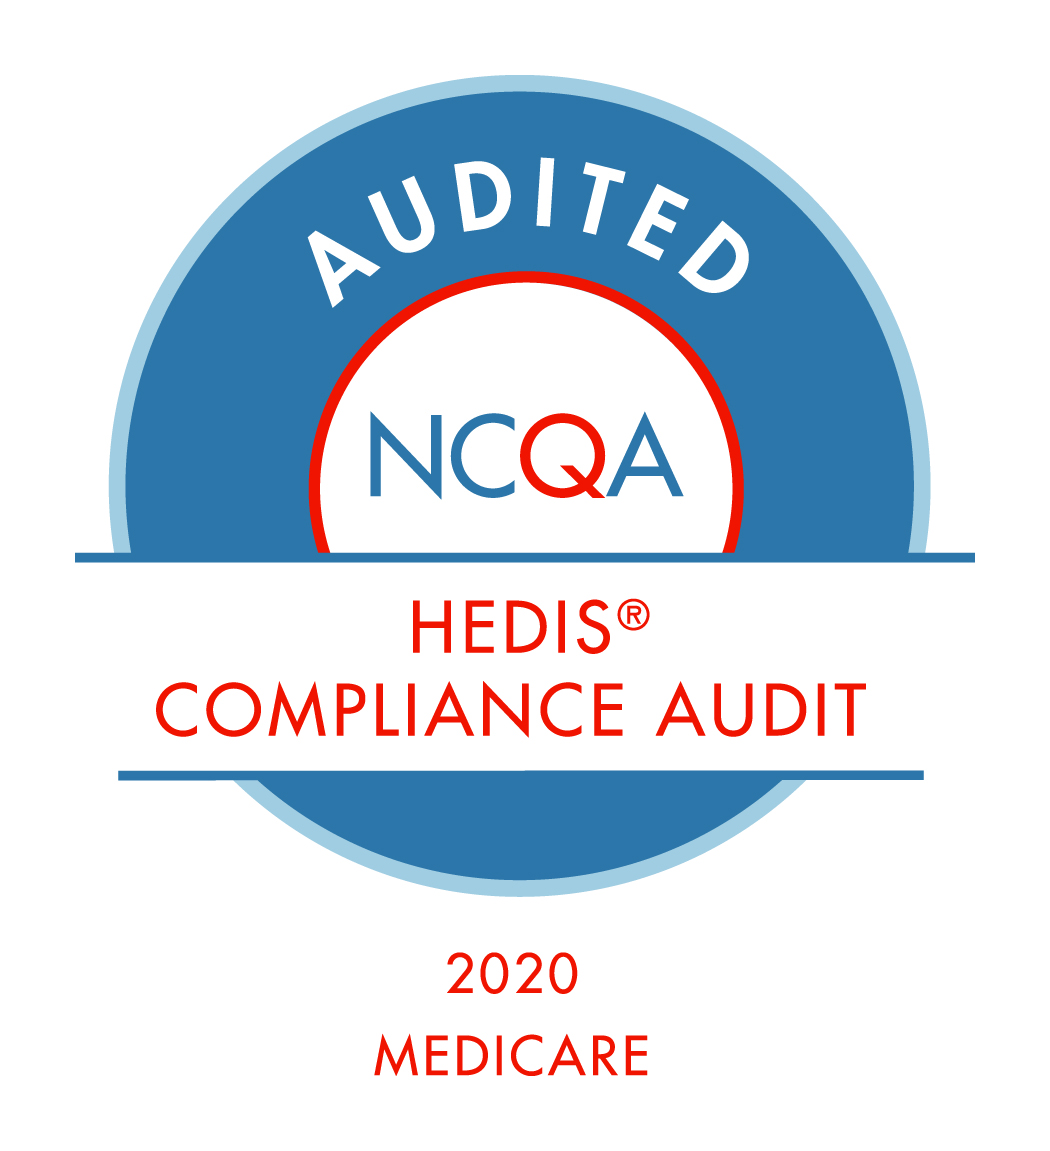 HEDIS Compliance audit award for 2019